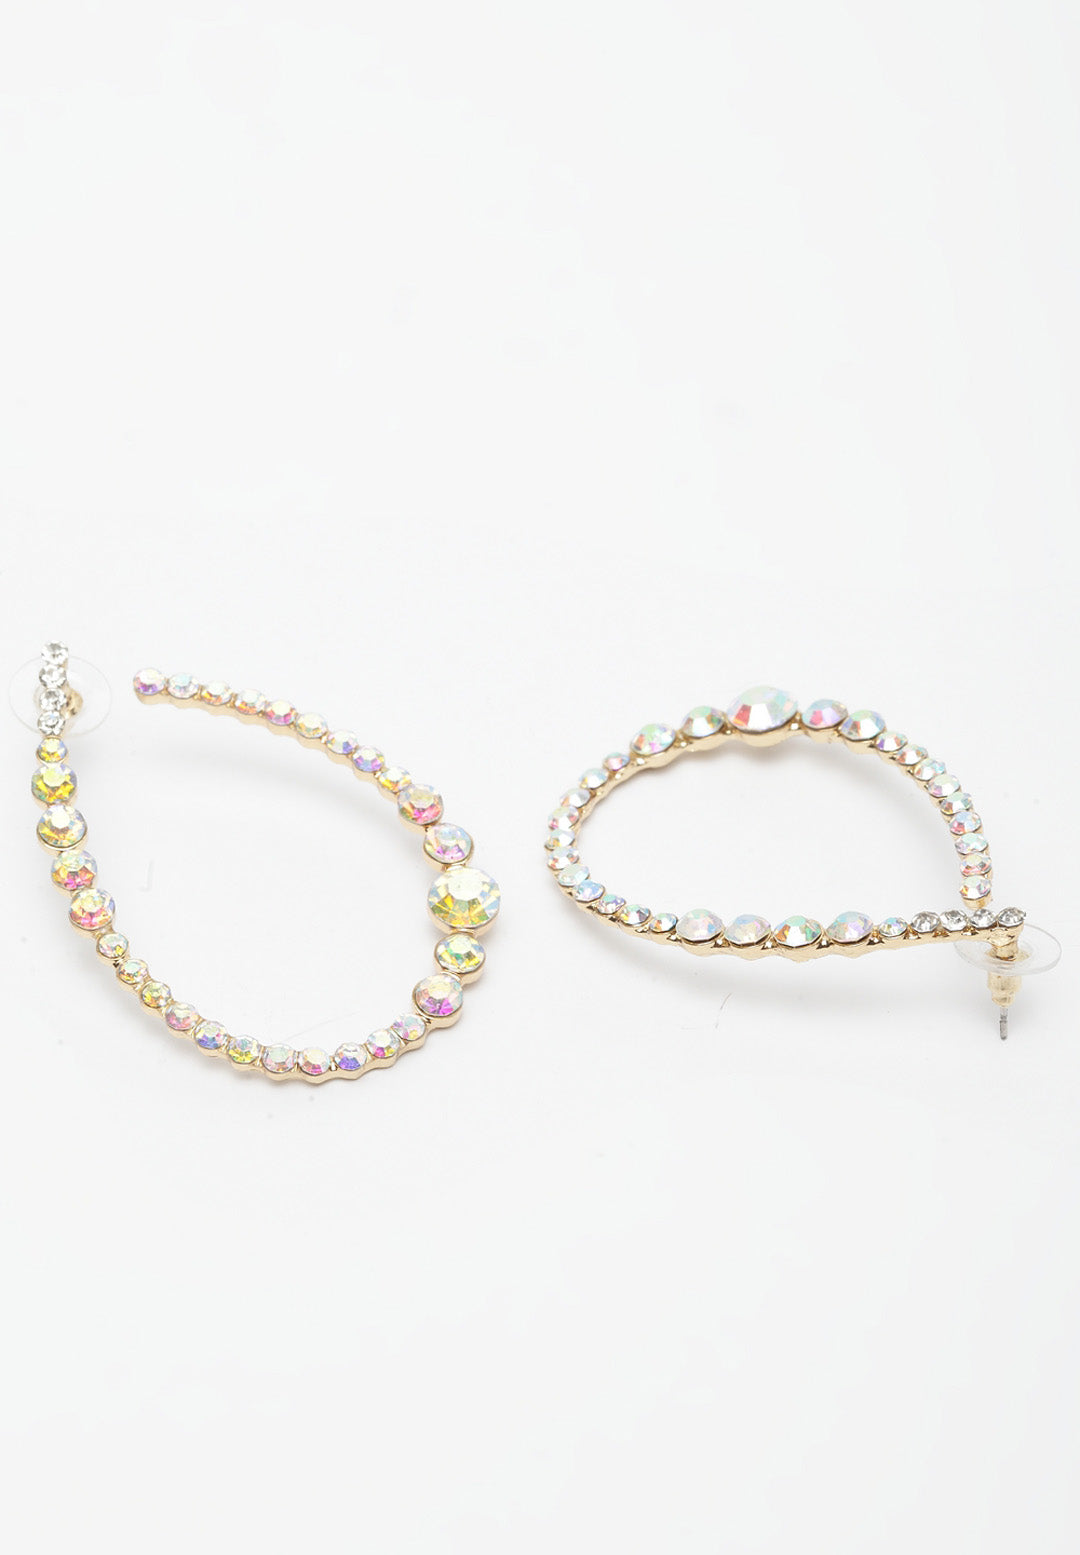 Avant-Garde Paris Multicoloured Rhodium-Plated Oval Hoop Earrings